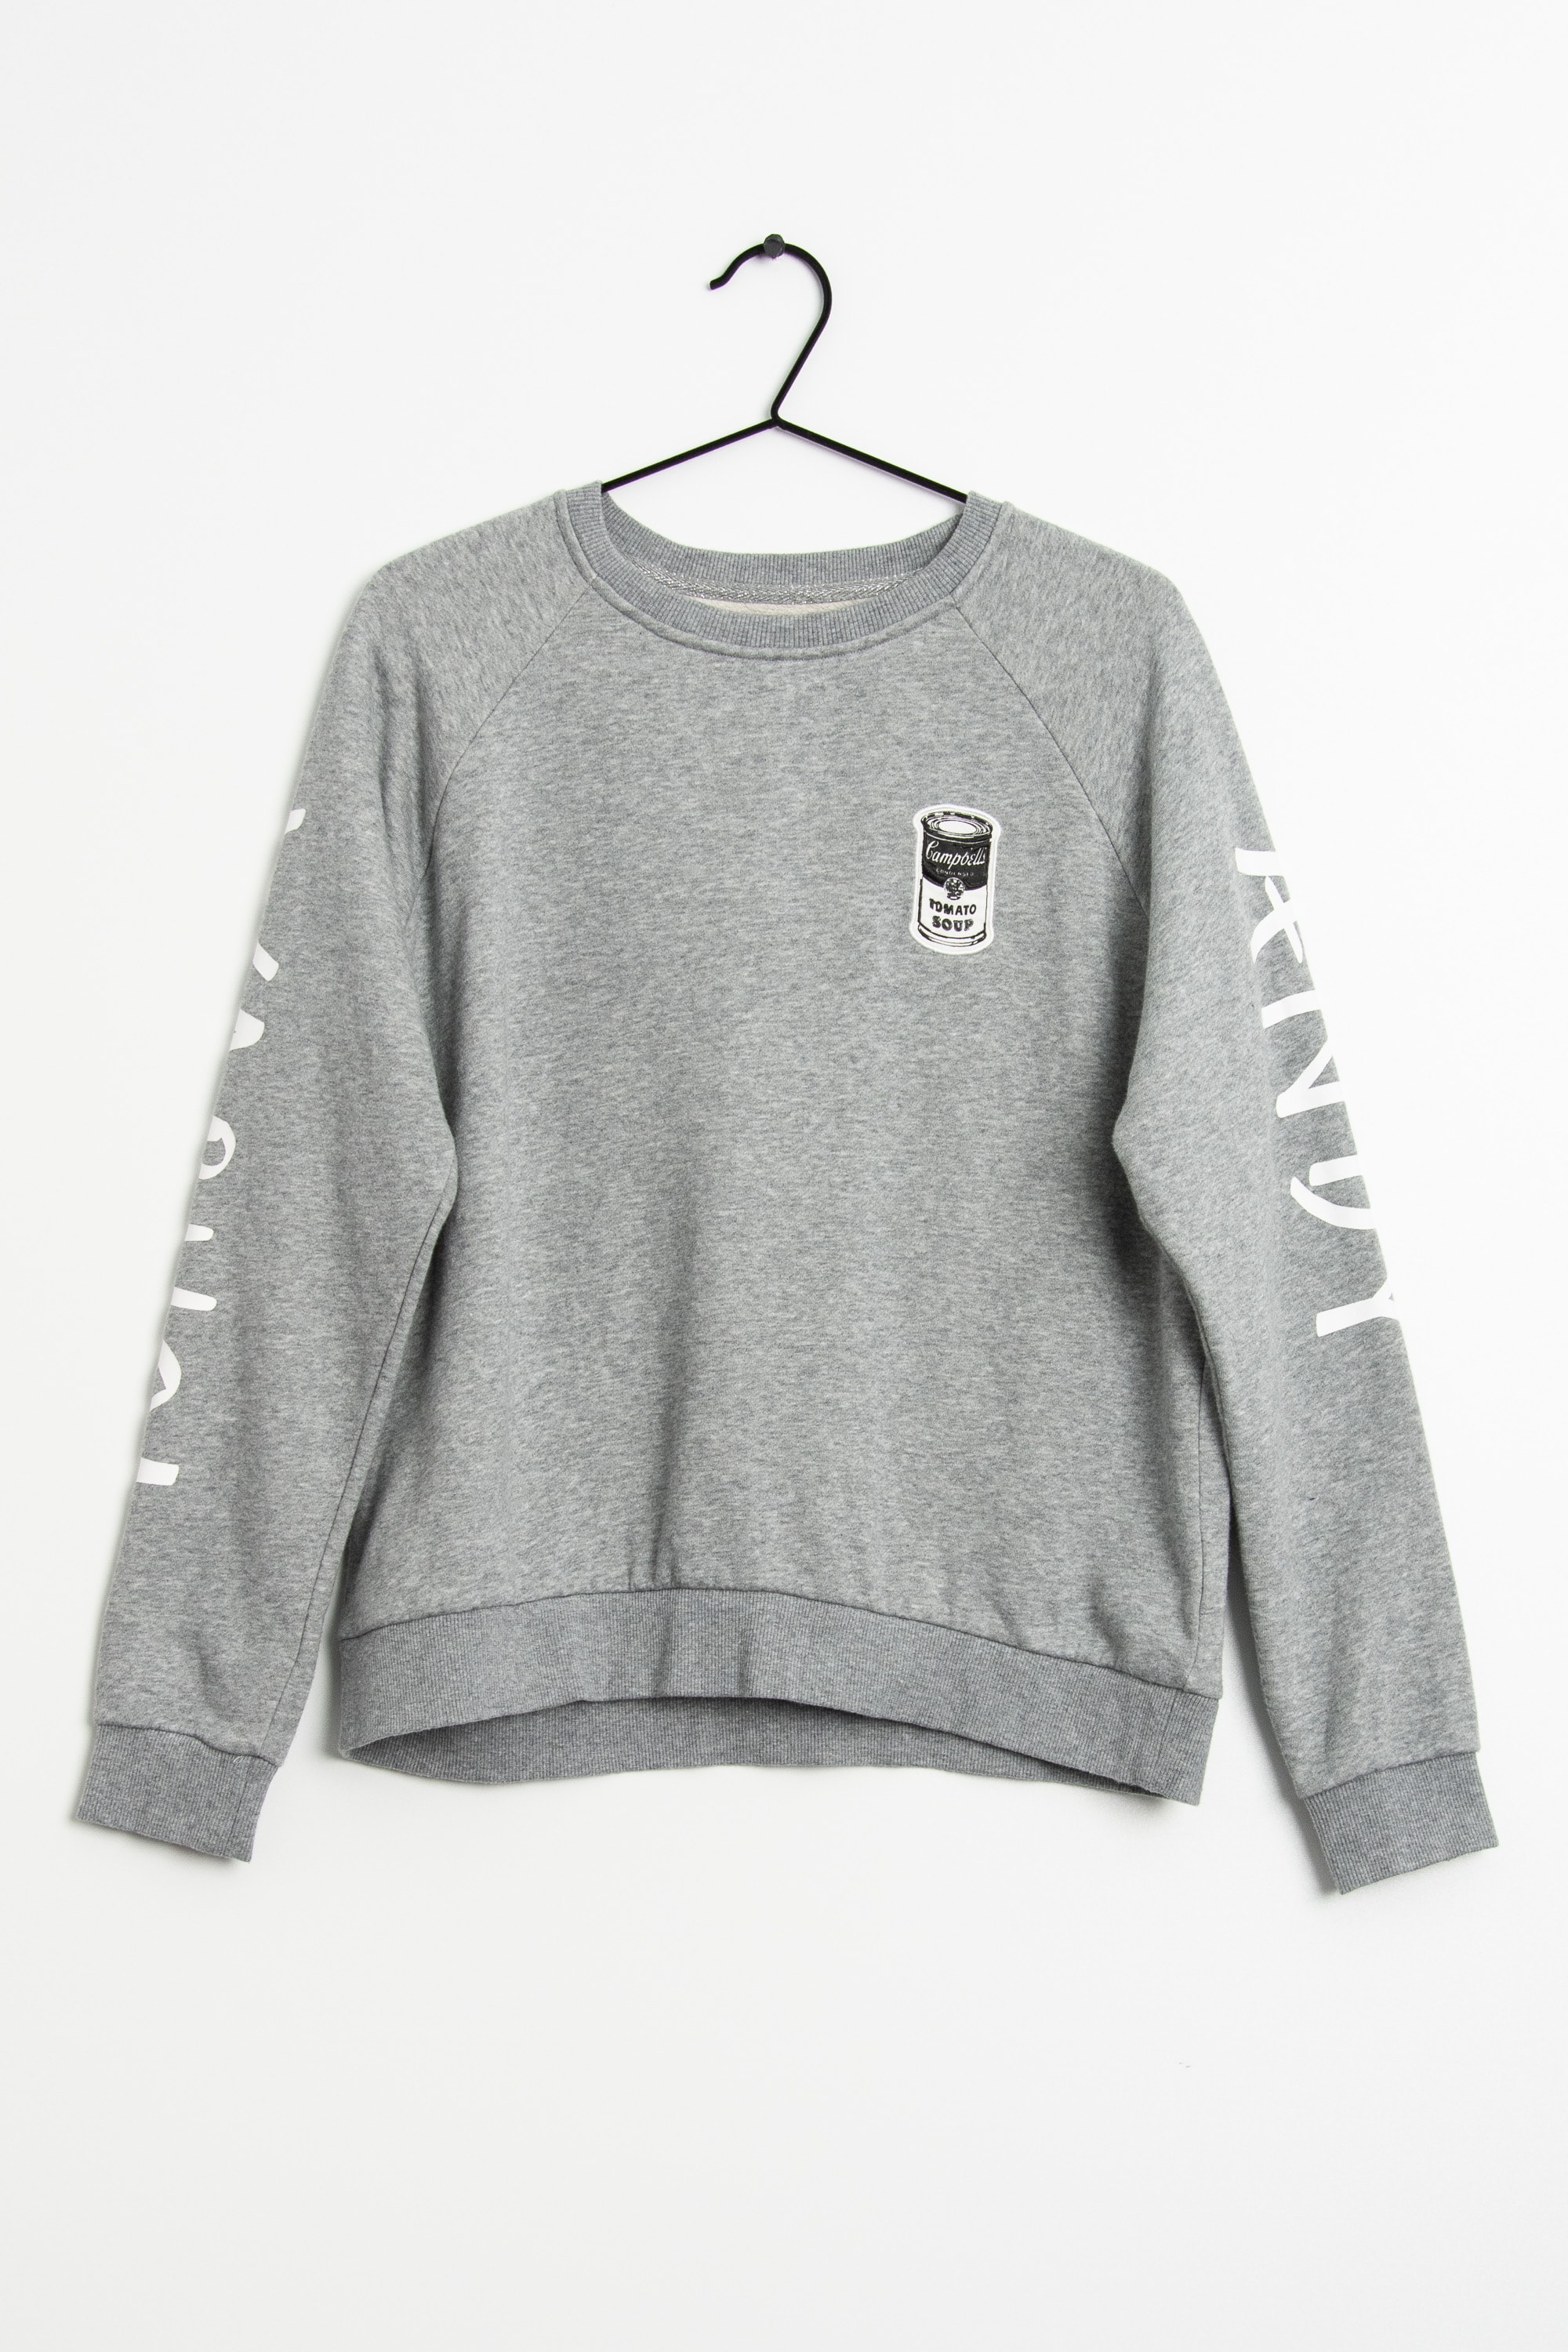 Pepe Jeans Sweat / Fleece Grau Gr.M